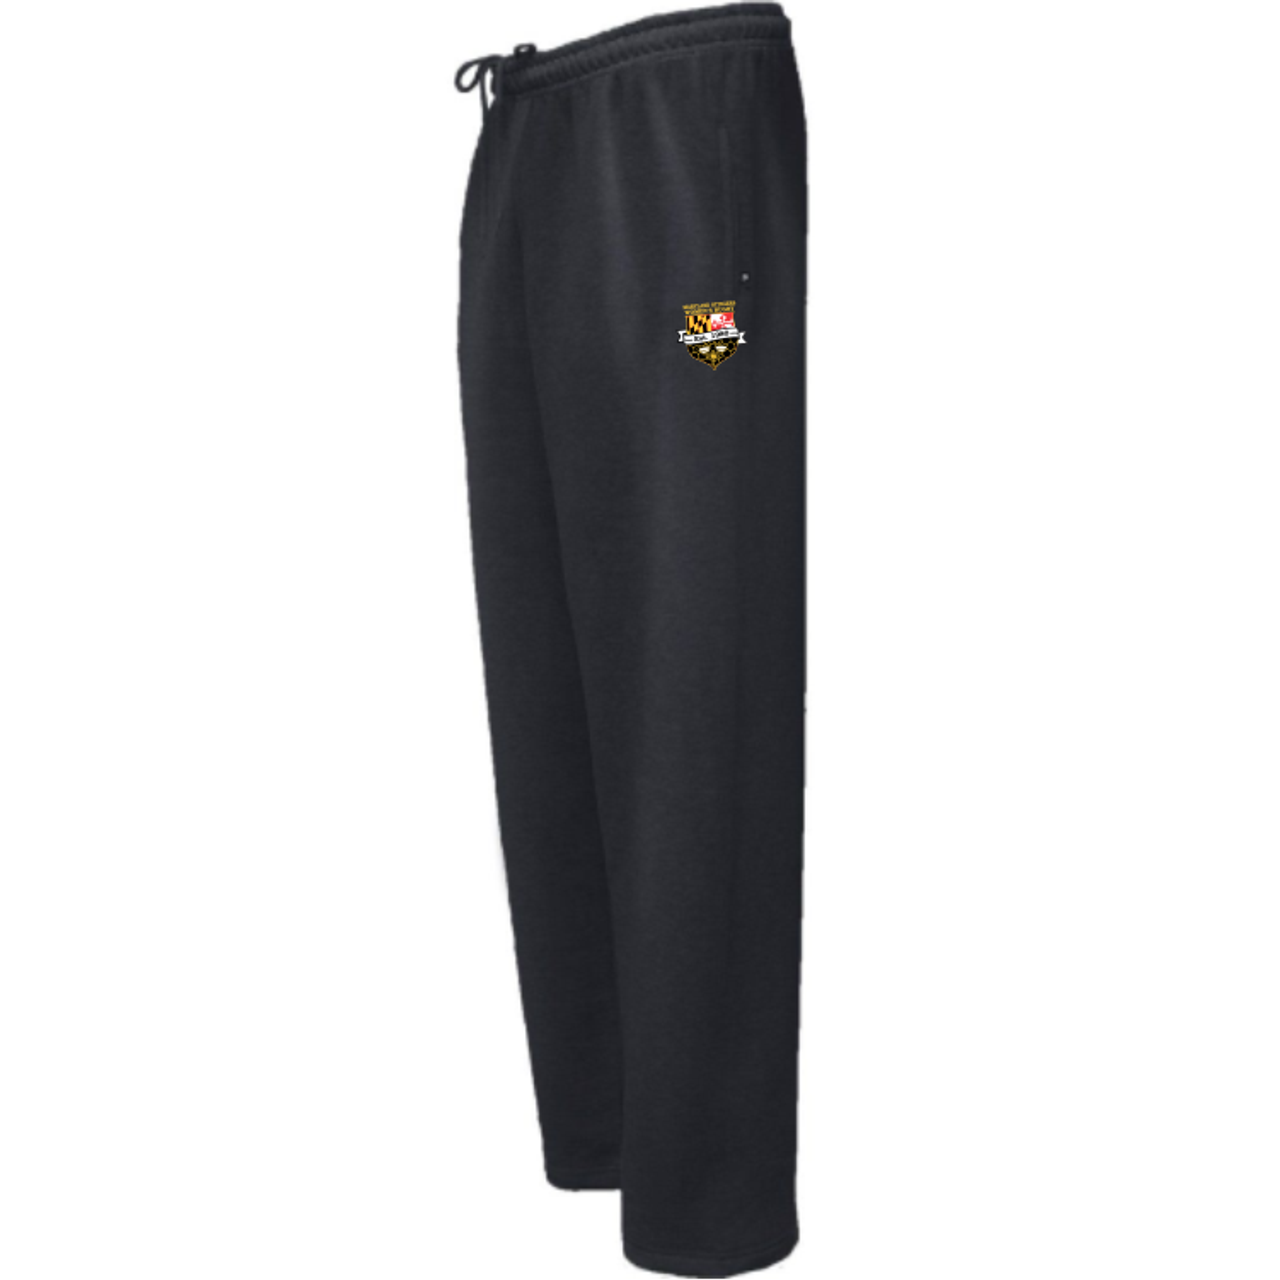 Stingers Rugby Sweatpant, Black